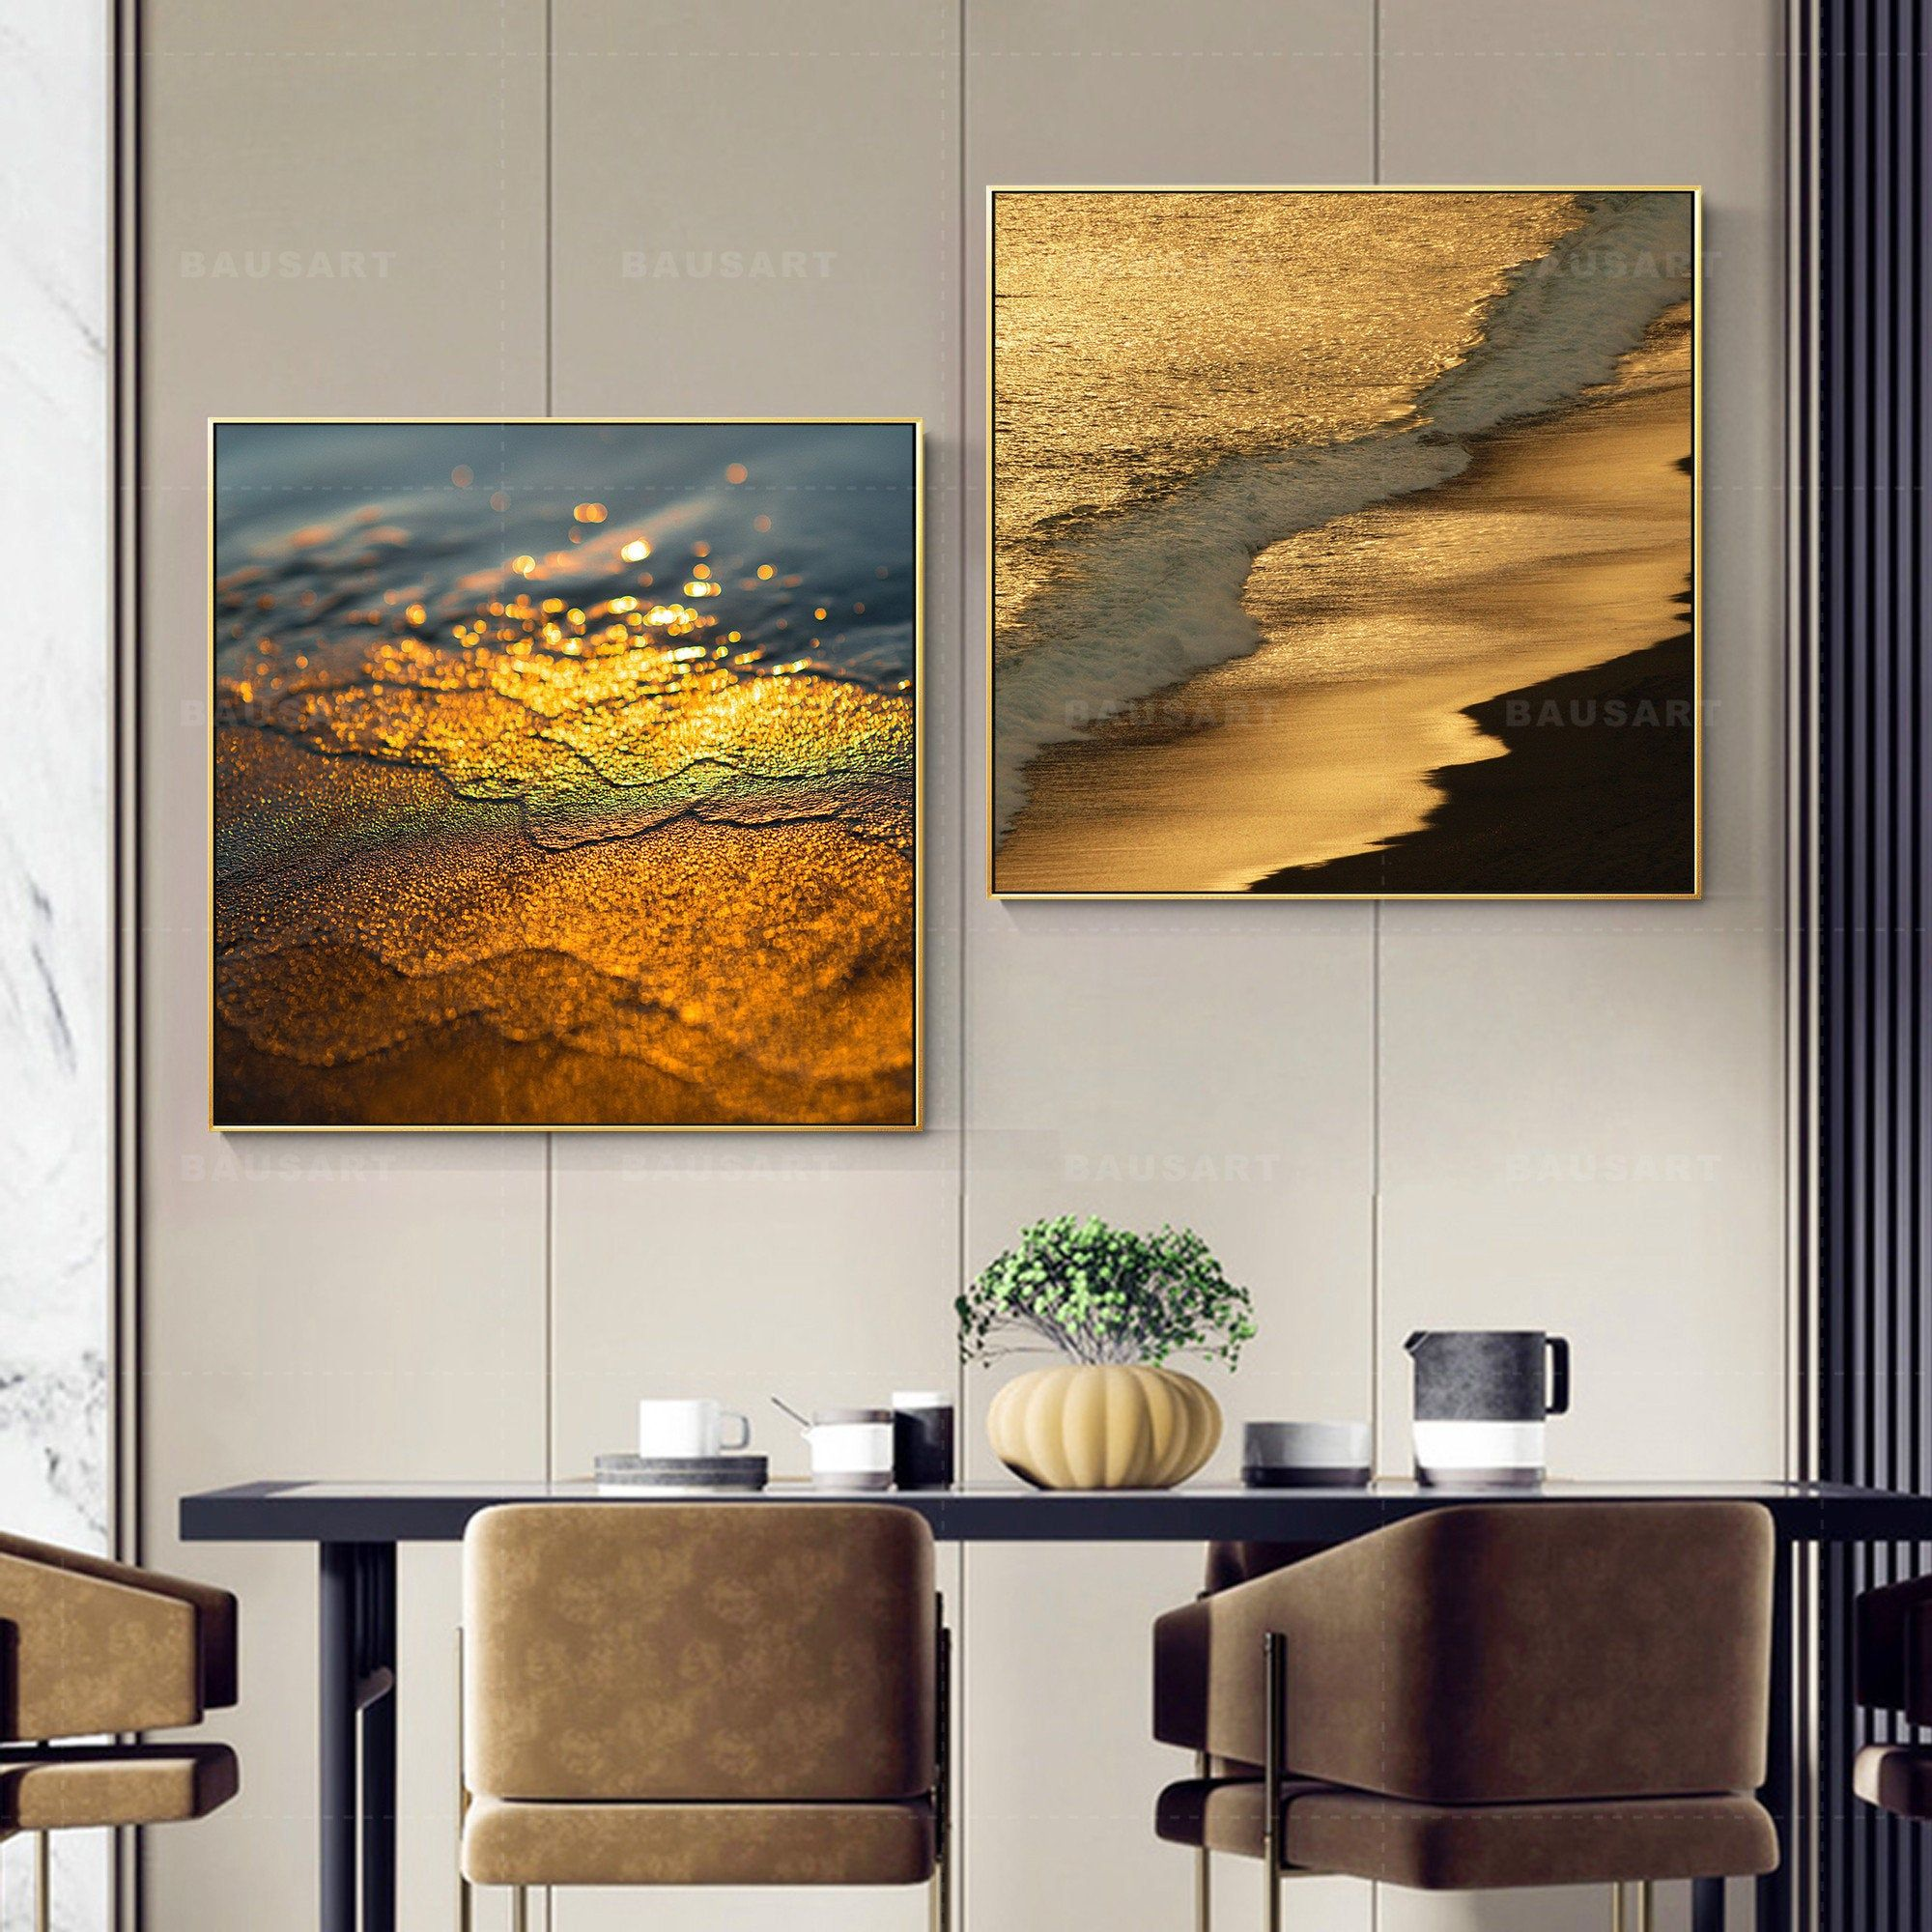 2 Pieces Framed Wall Art Set Of 2 Prints Beach Art Framed Etsy In 2021 Framed Wall Art Sets Beach Art Framed Frames On Wall